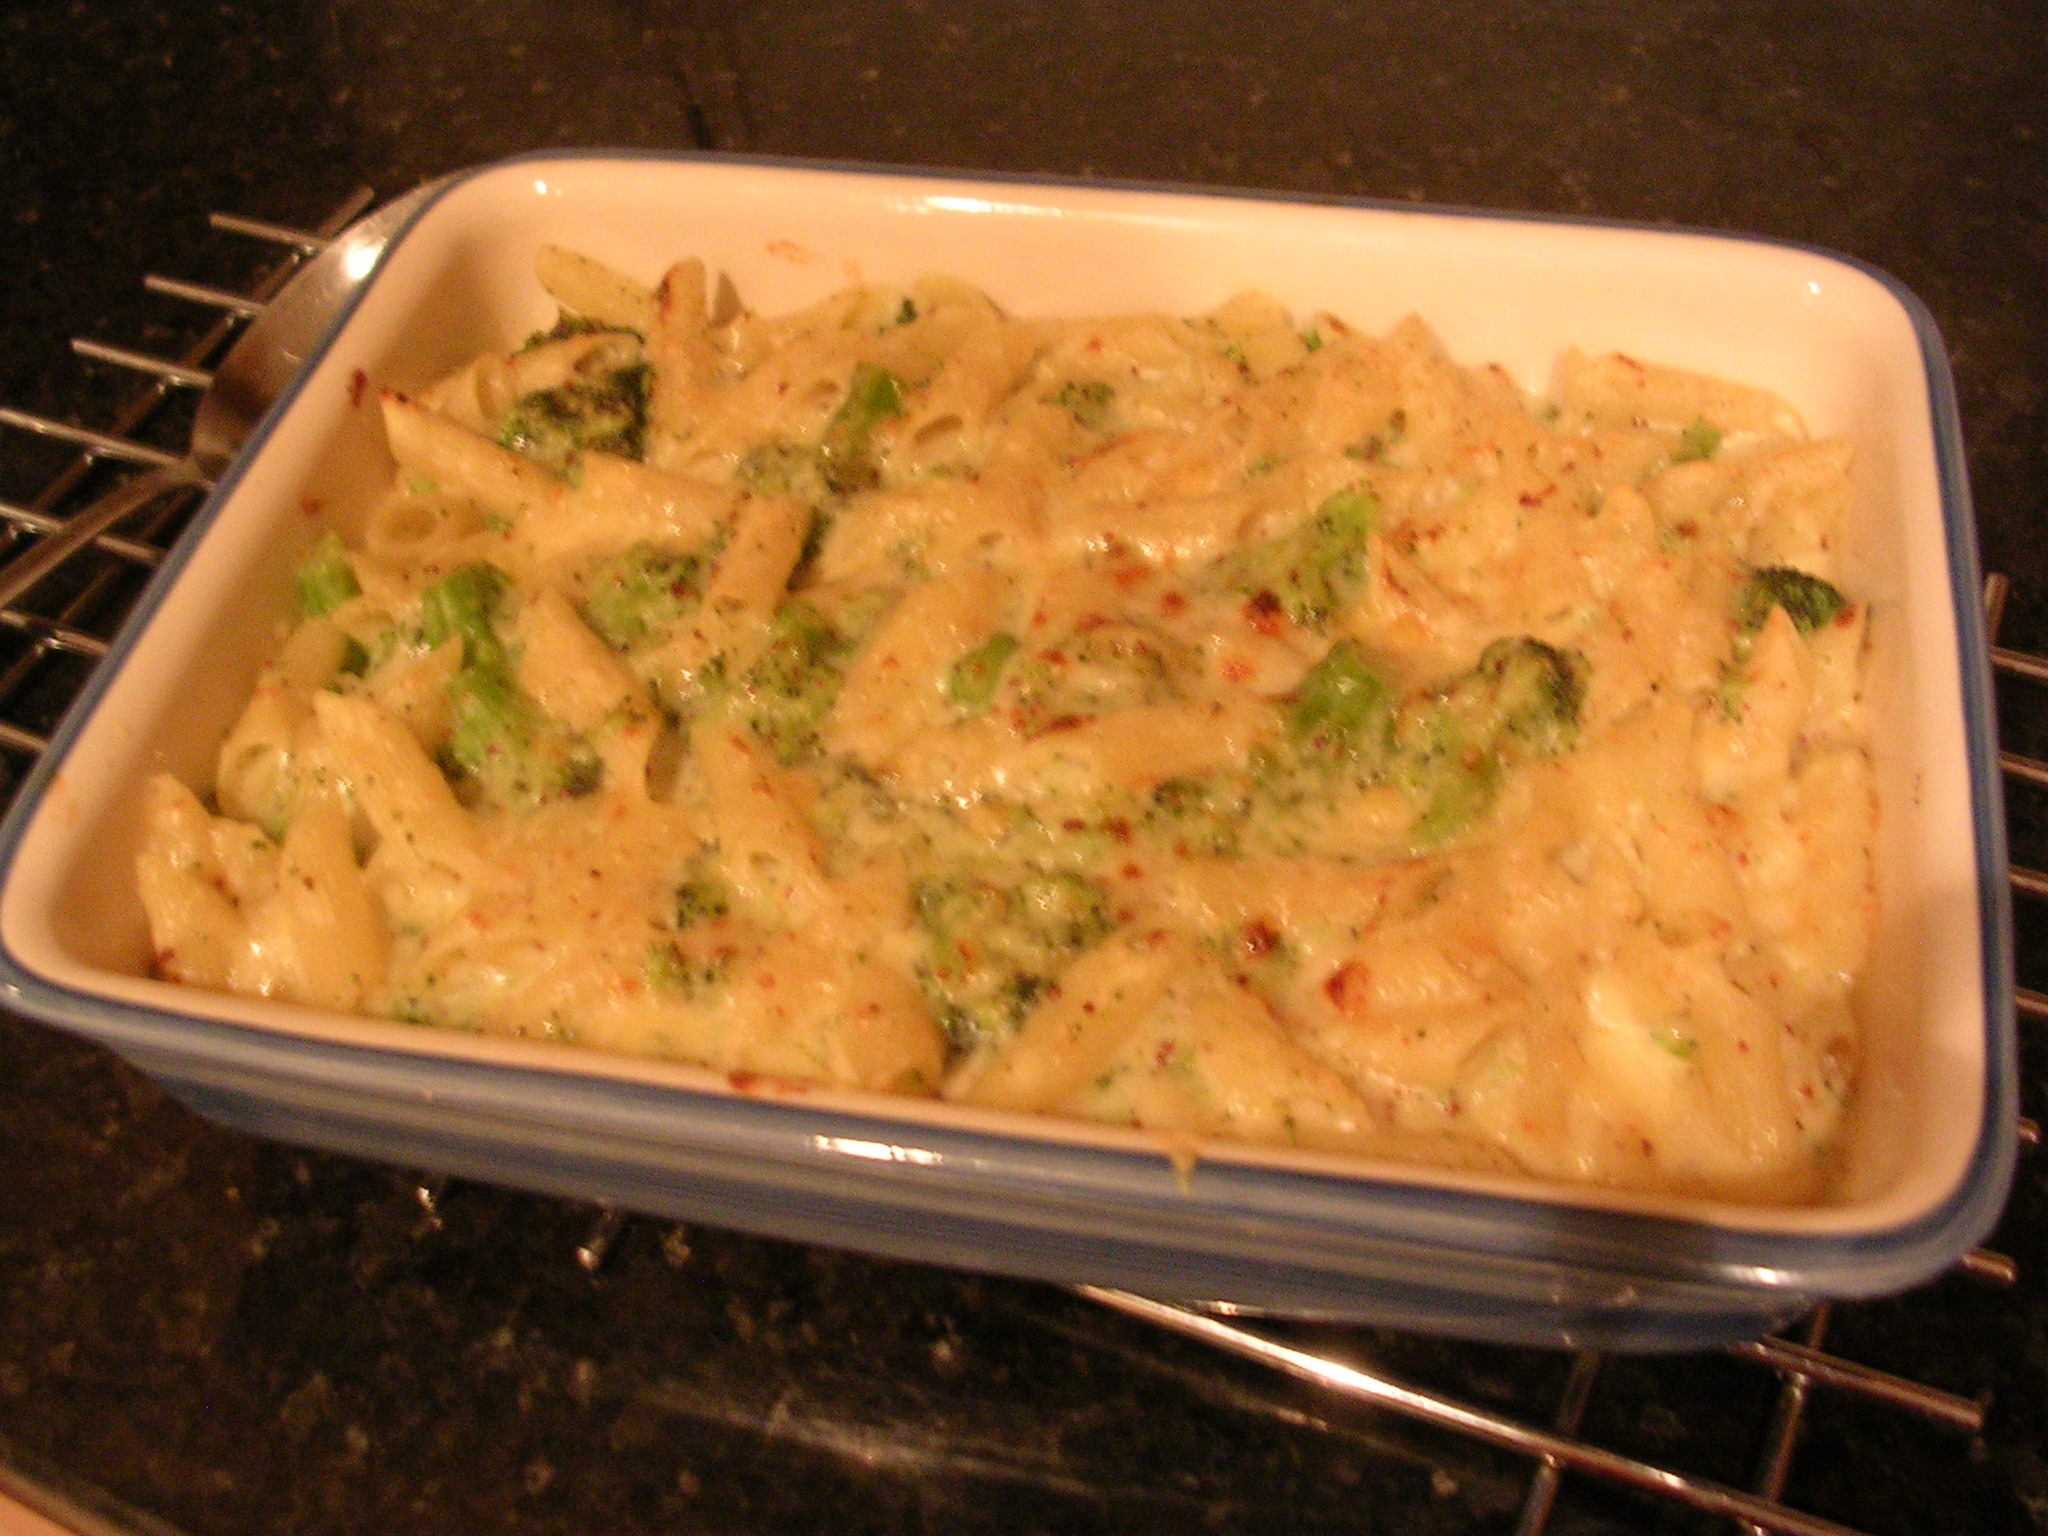 Cheesy Penne and Broccoli Bake